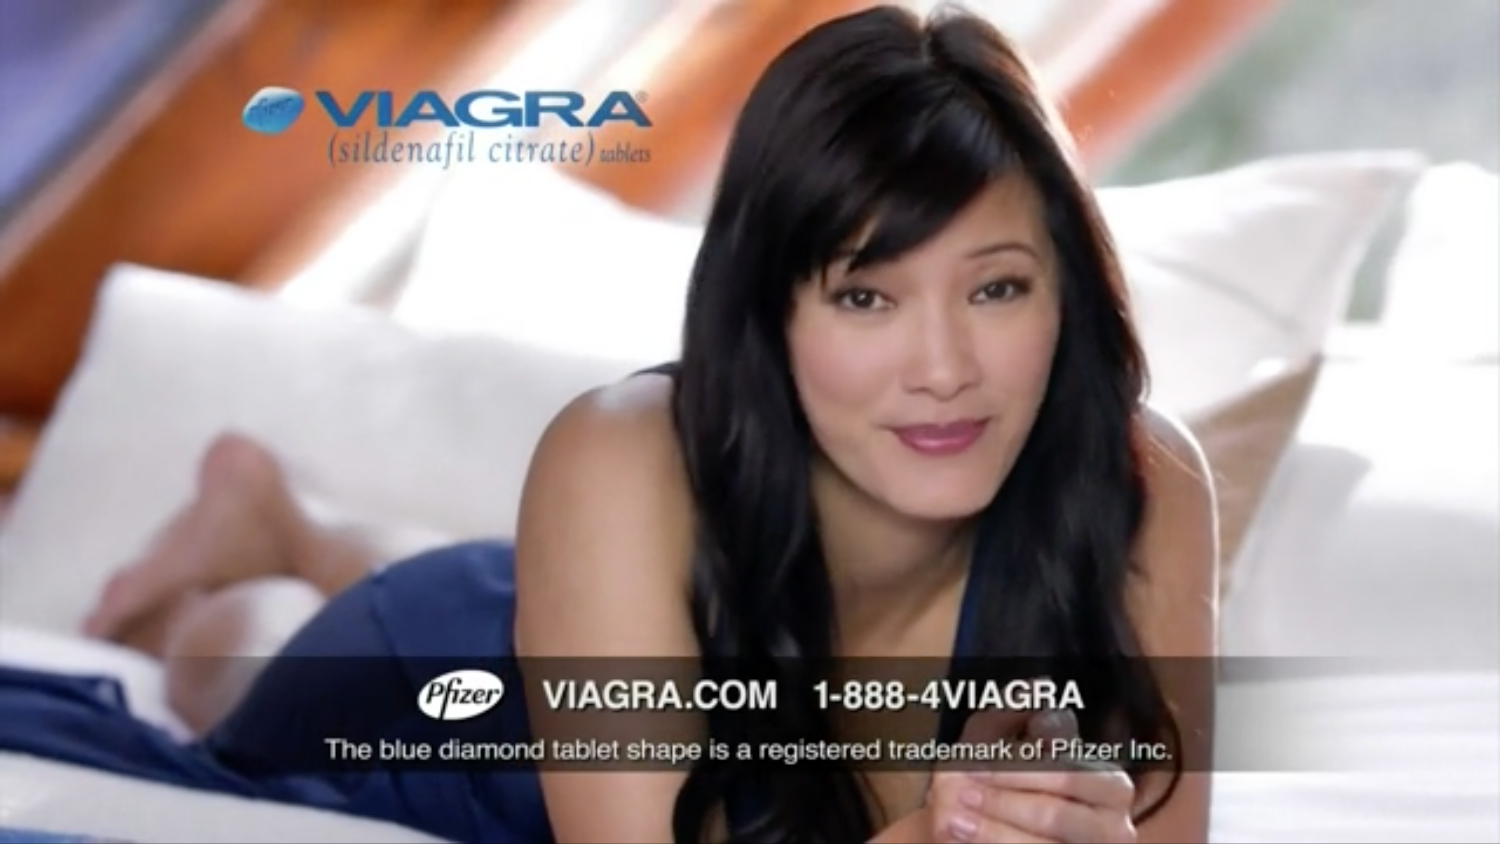 Viagra Tv Commercials